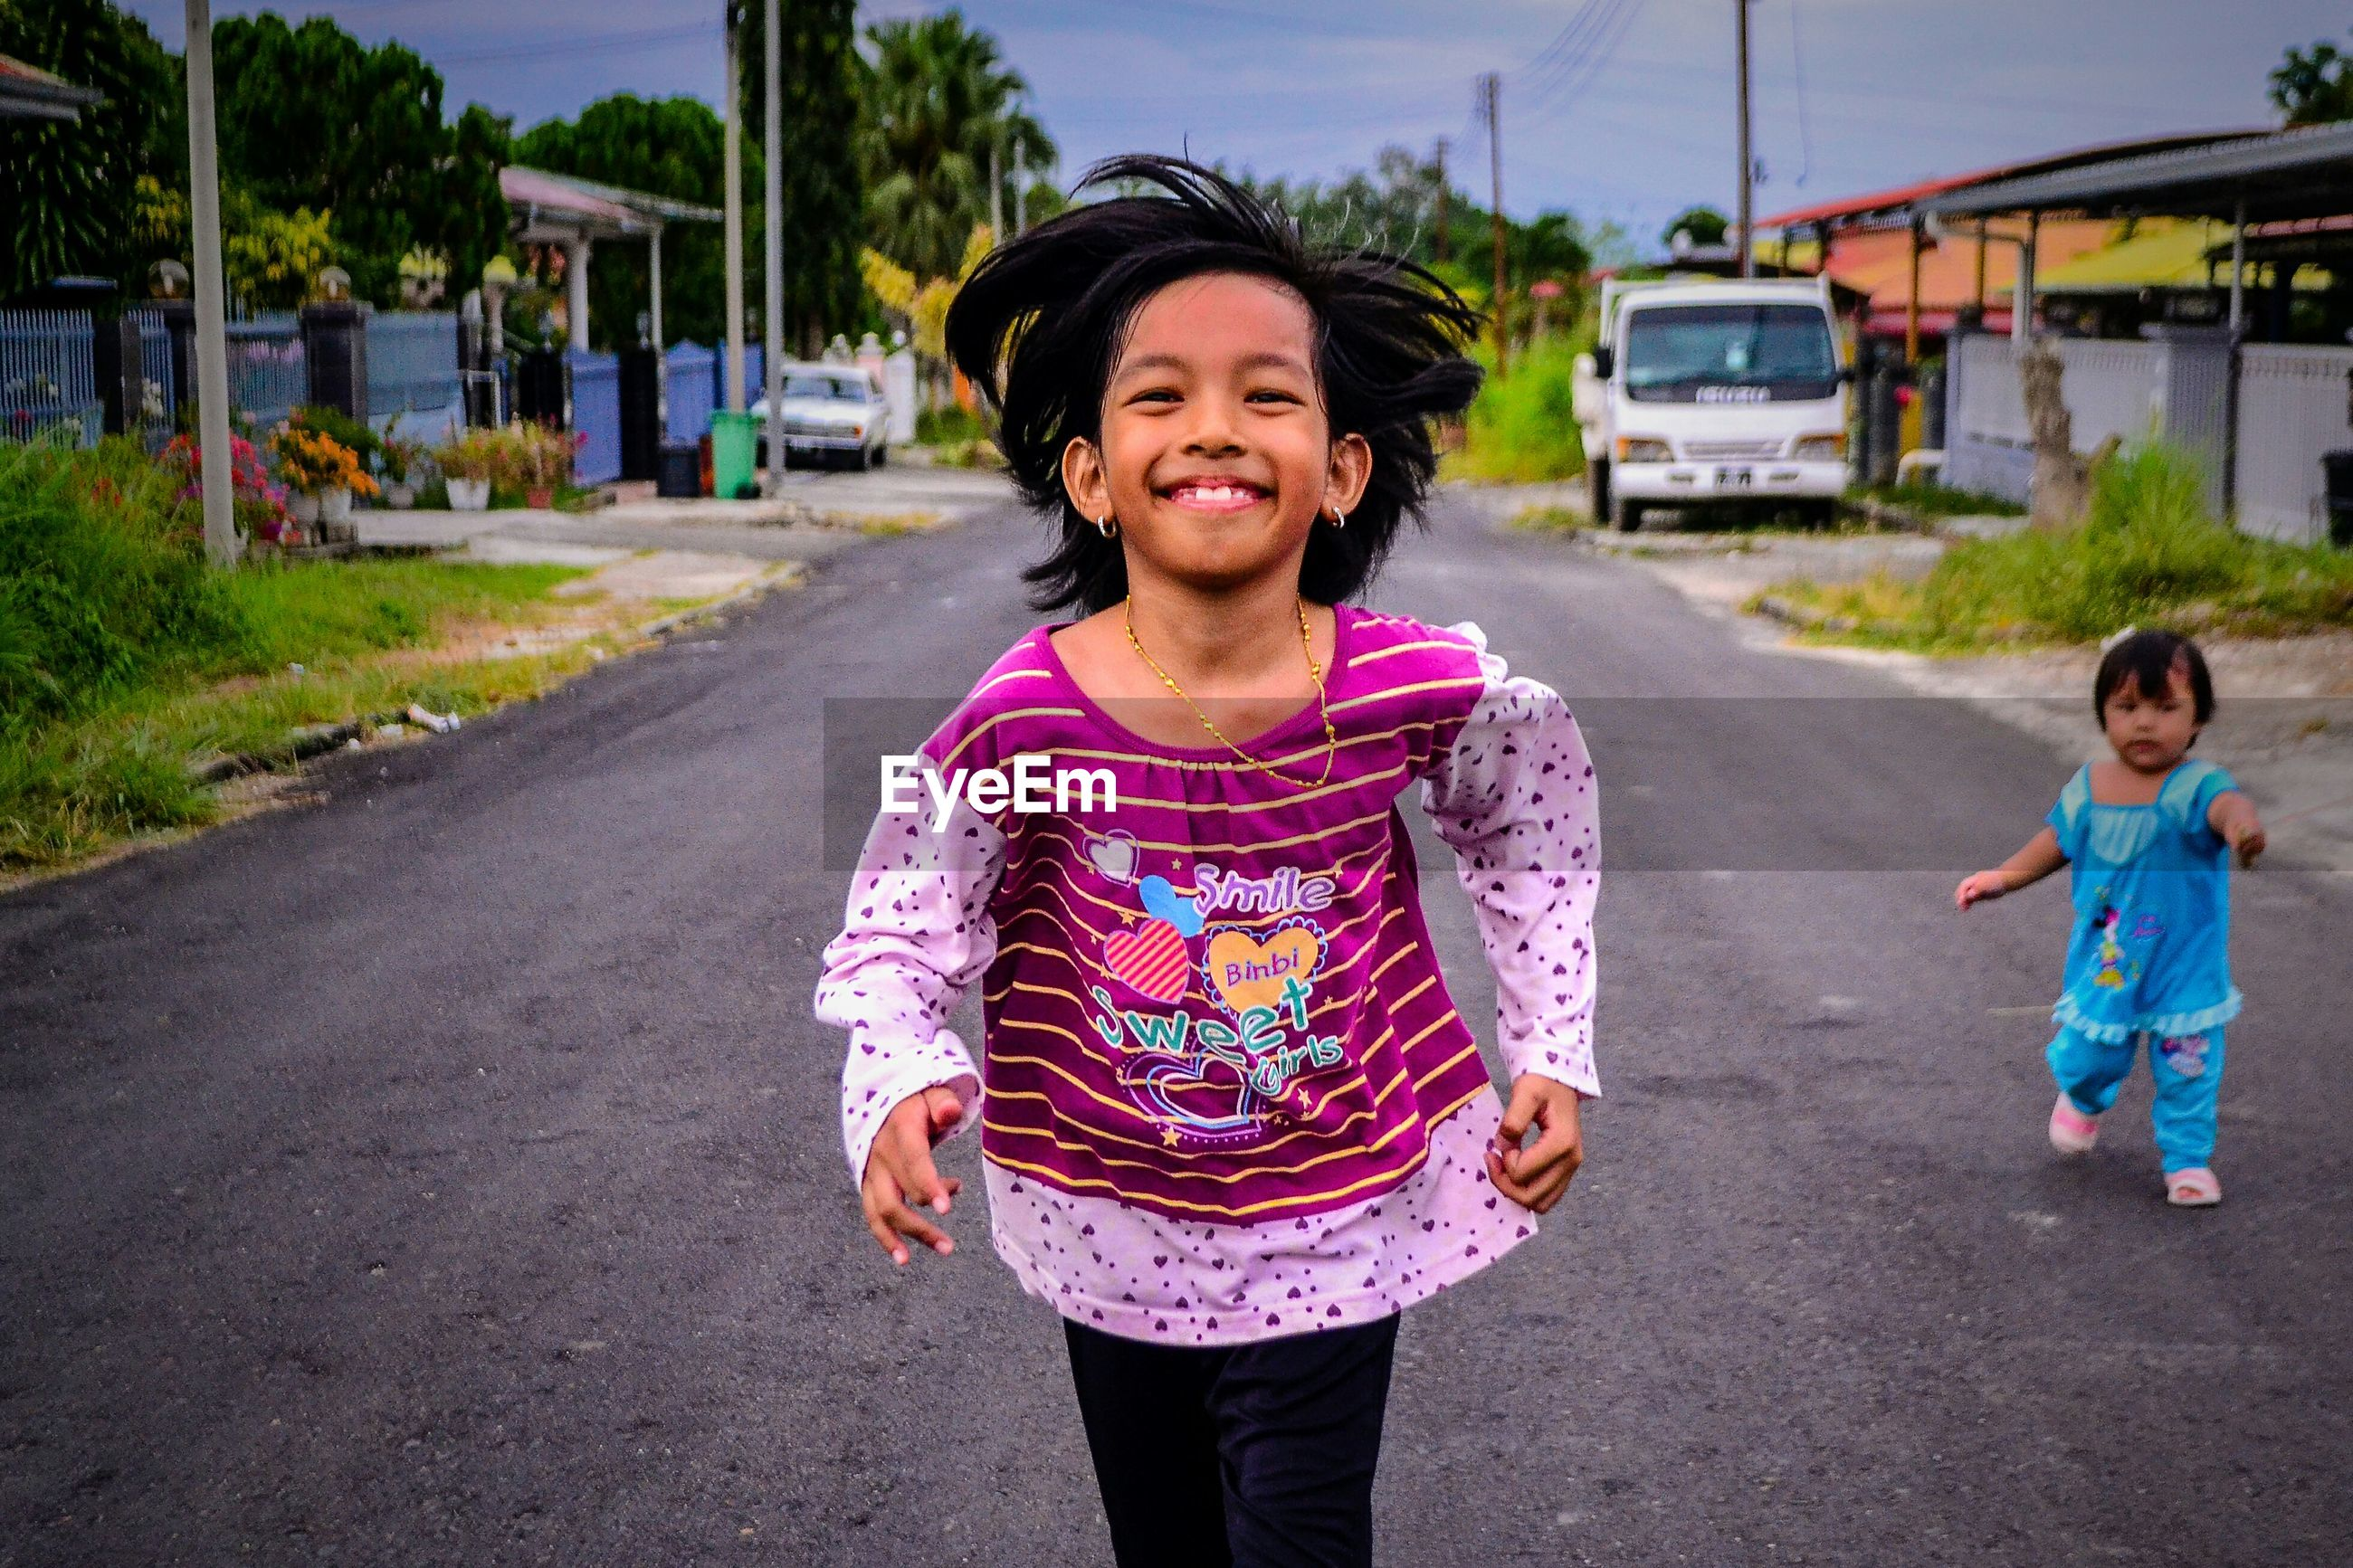 PORTRAIT OF A SMILING GIRL WITH ROAD